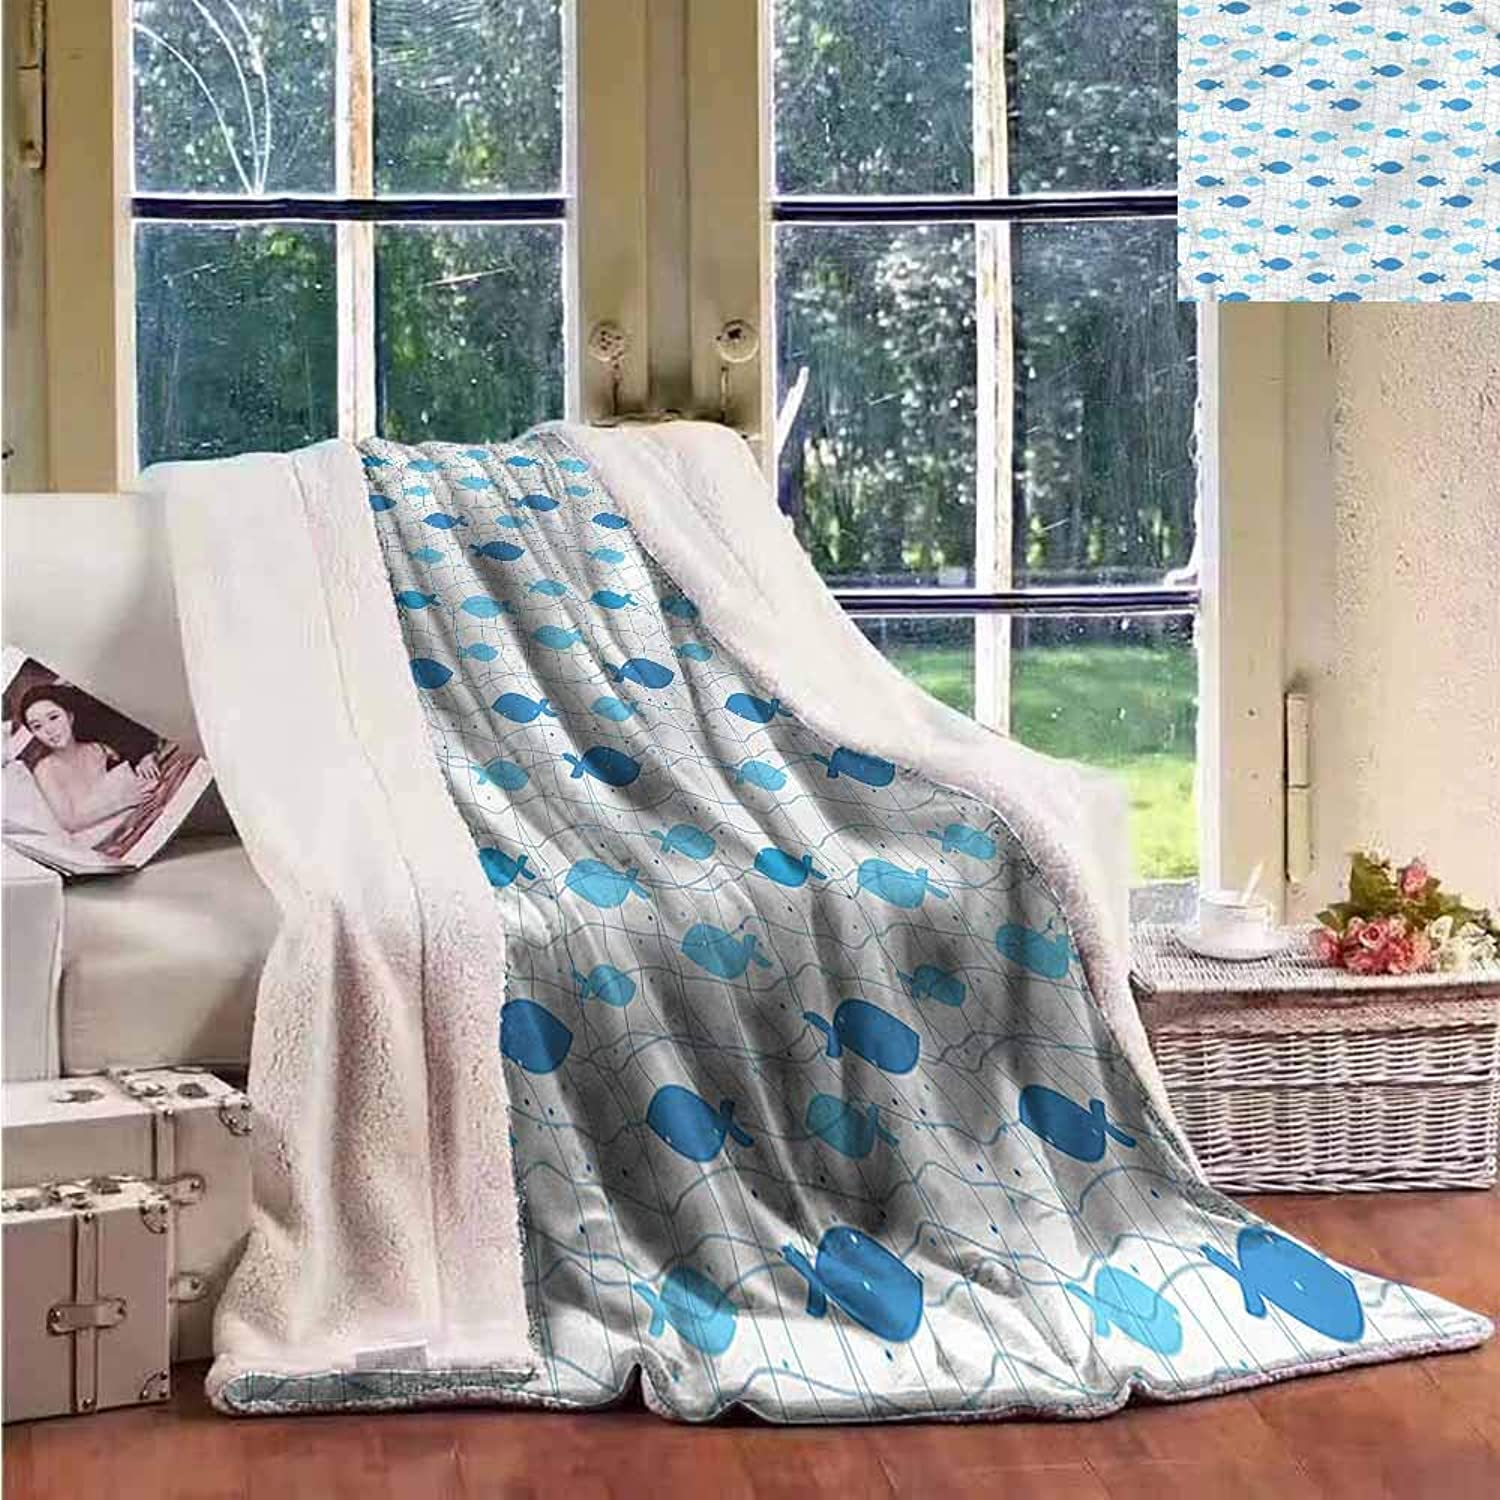 Sunnyhome Winter Quilt Fish Geometric Net Design Dots Personalized Baby Blanket W59x31L